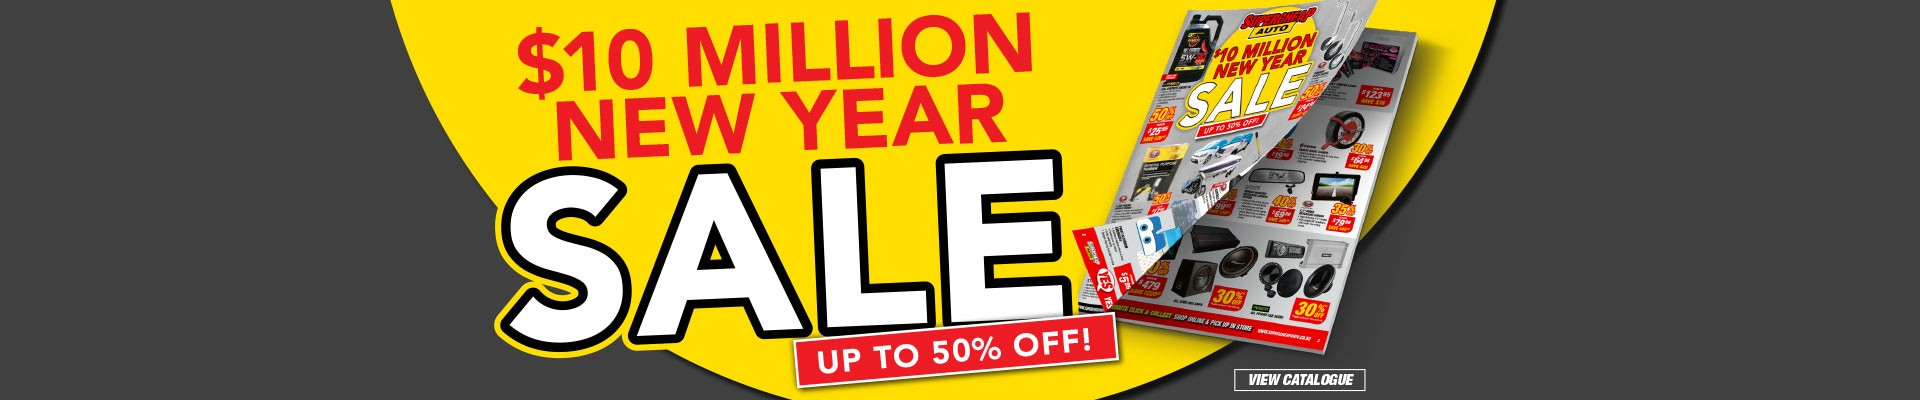 Bargain - Up to 50% Off - New Year Sale @ Supercheap Auto